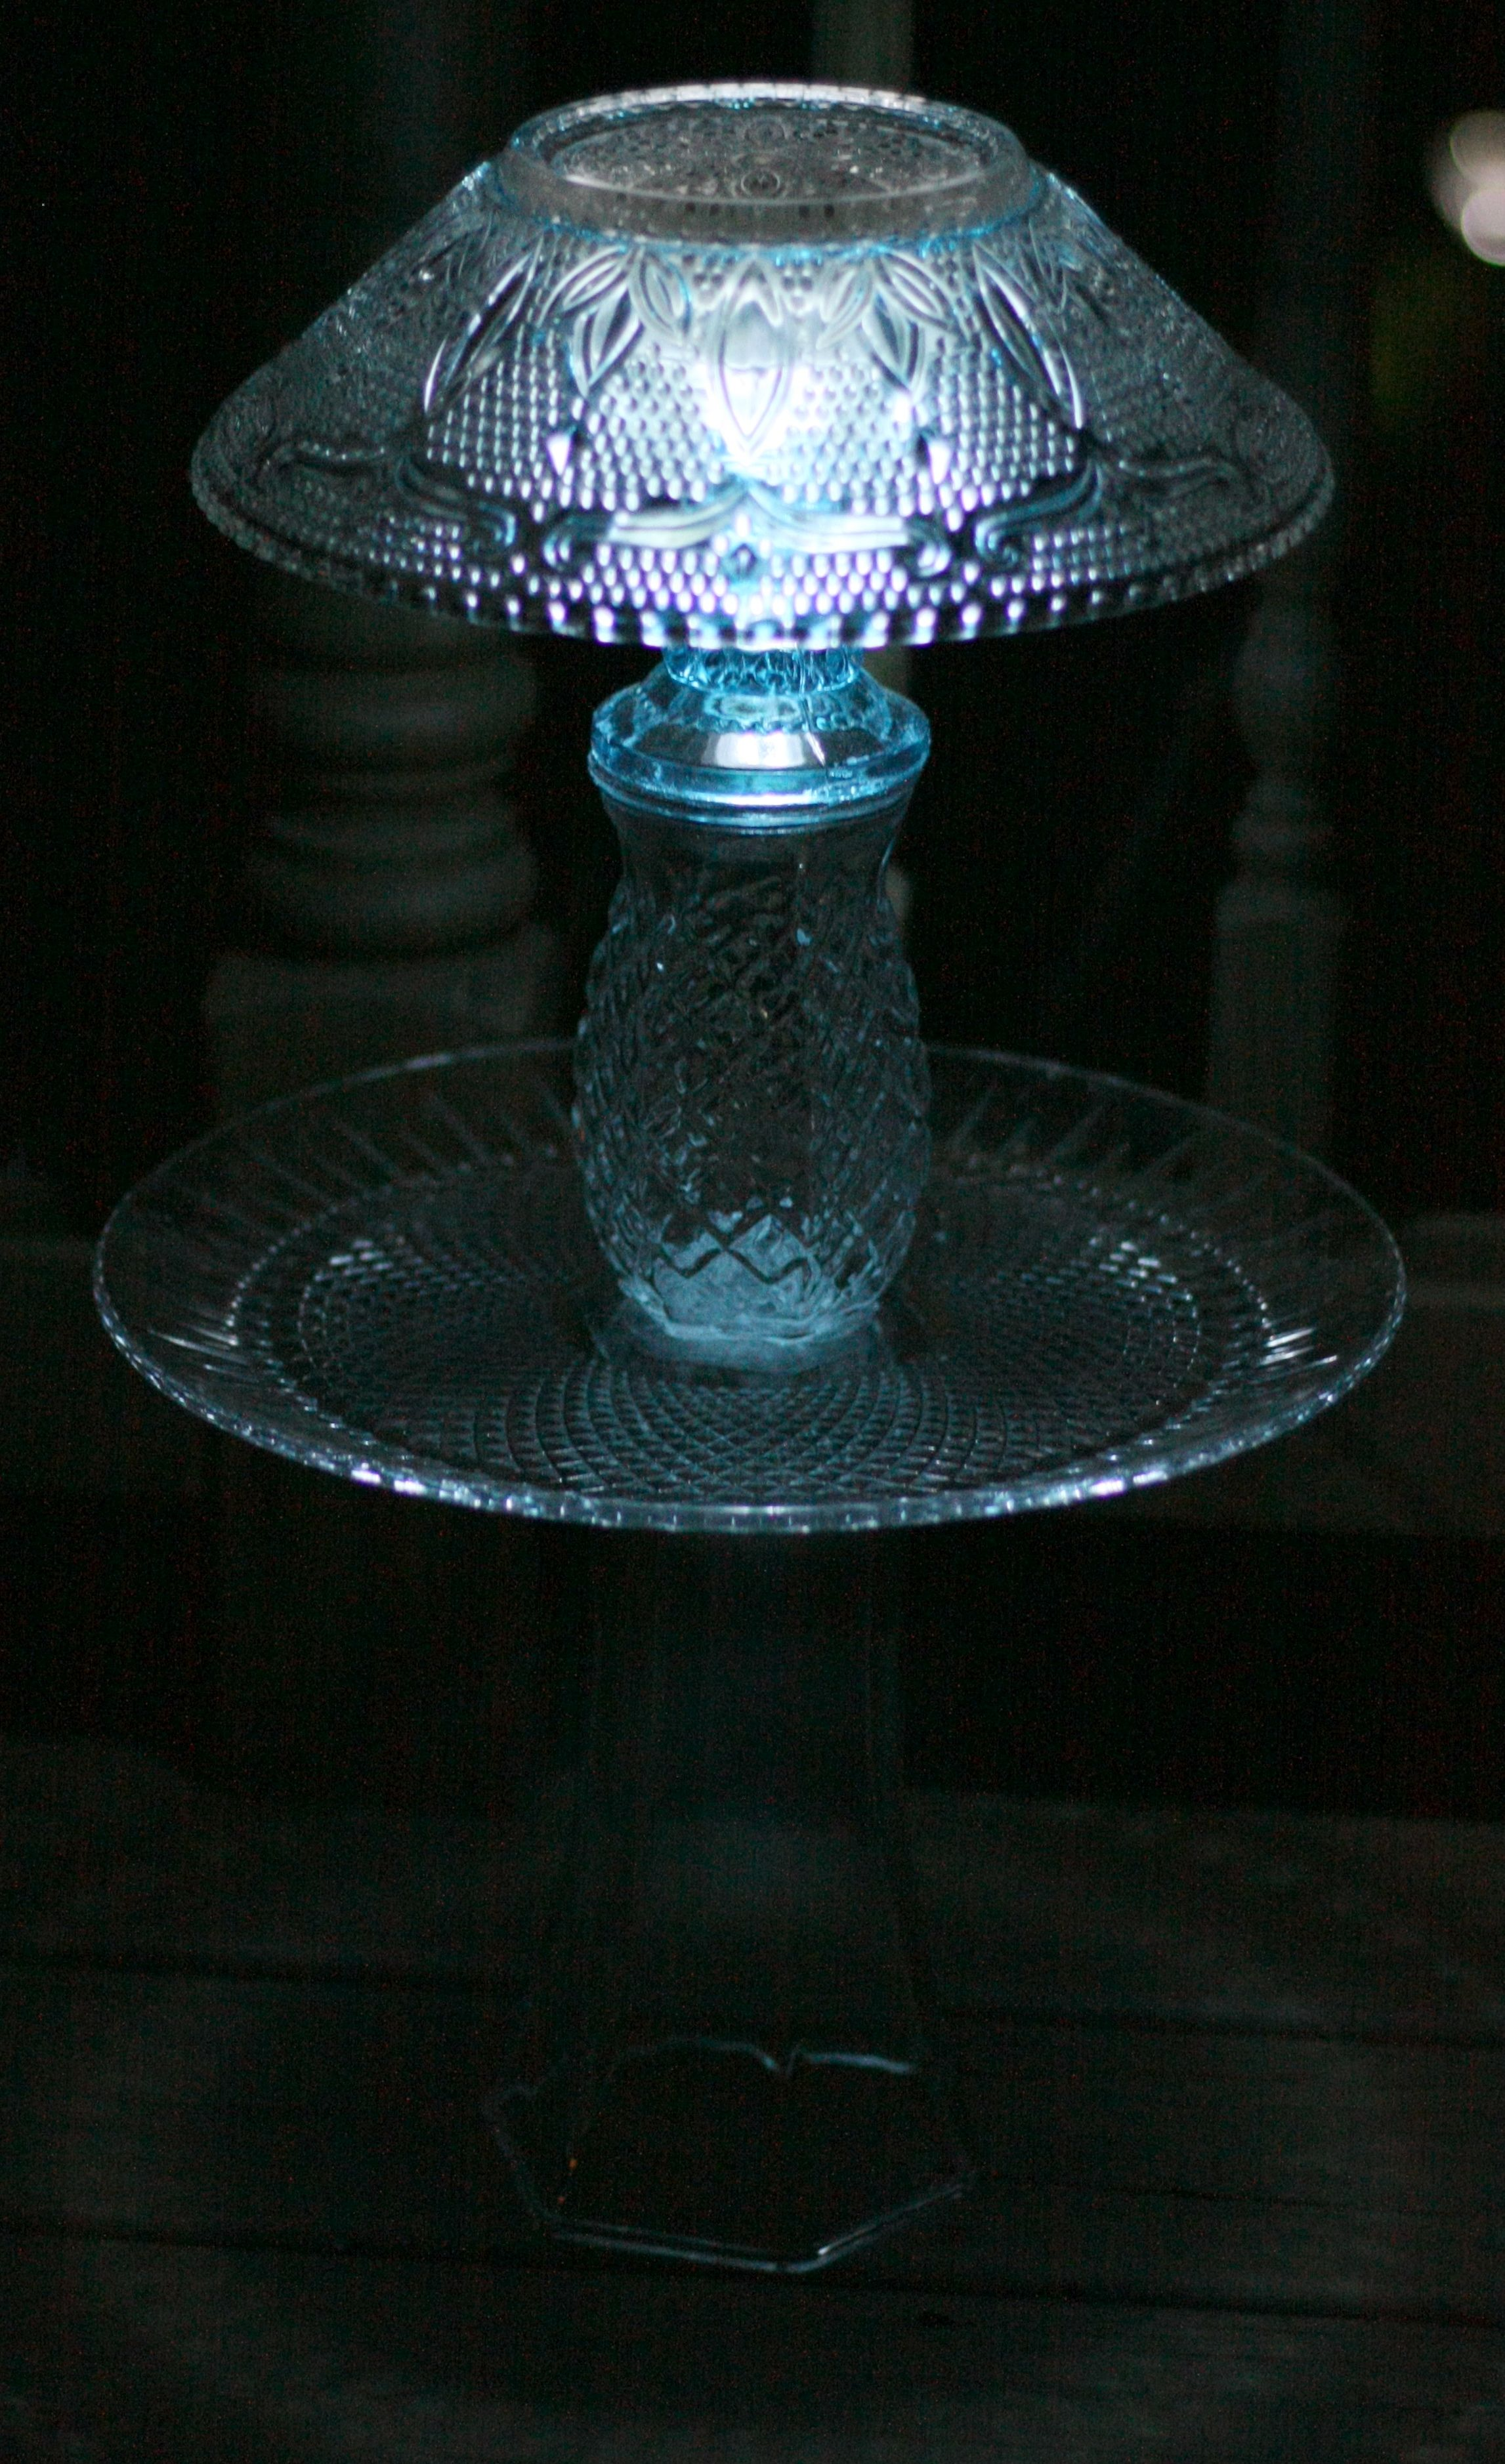 Look What You Can Create With Solar Lamps And Inexpensive Glass Garden Lighting Using Cells Bowls Vases Plates A Beautiful Lamp